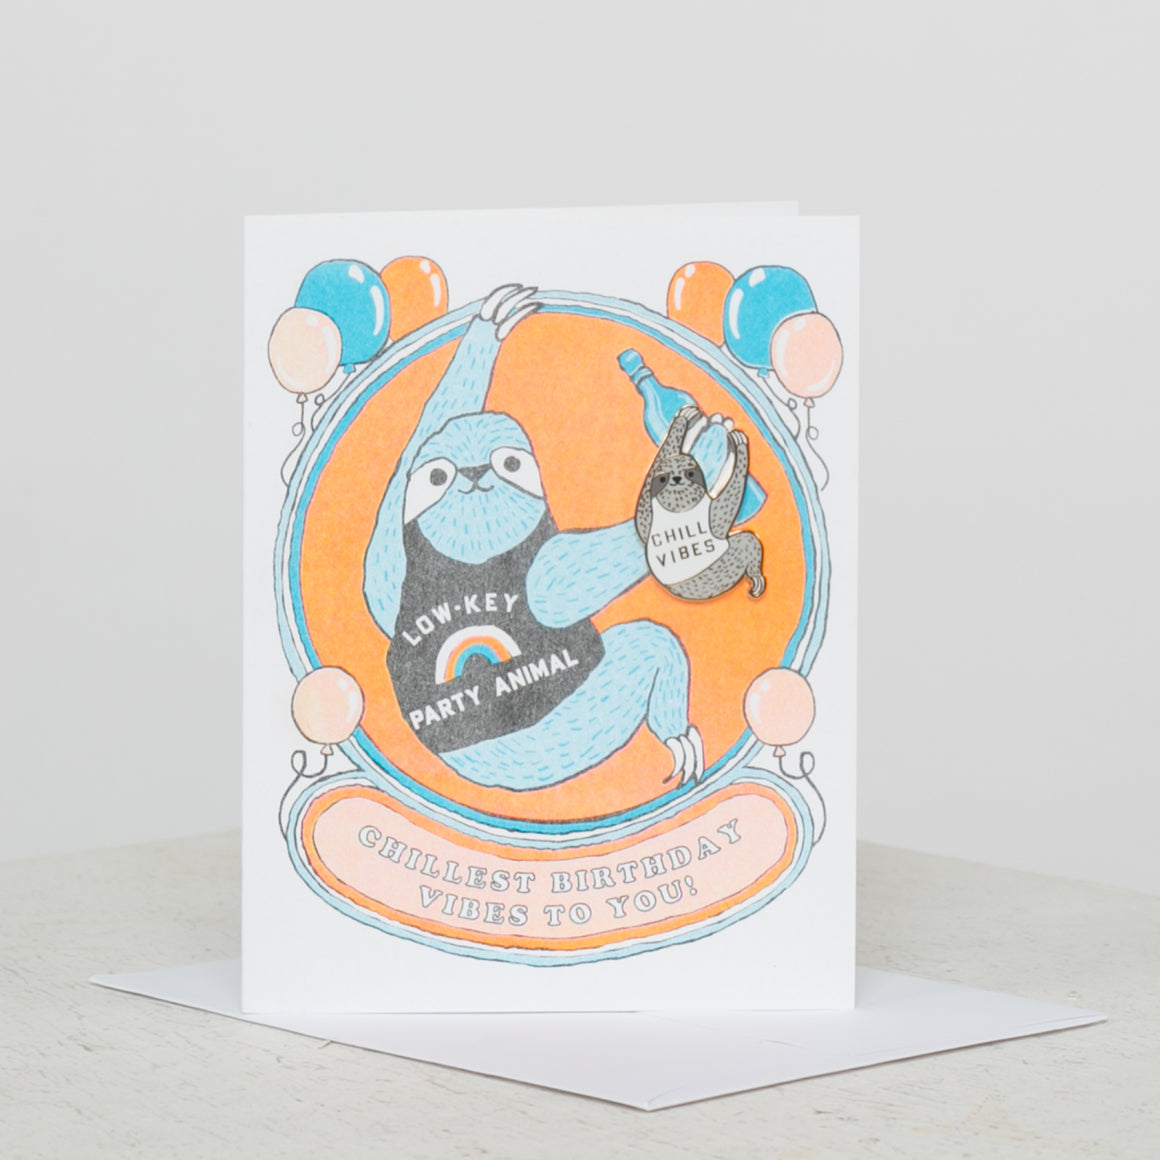 Sloth Chill Bday Party Card w/ Mag Sloth Pin - individual-medley